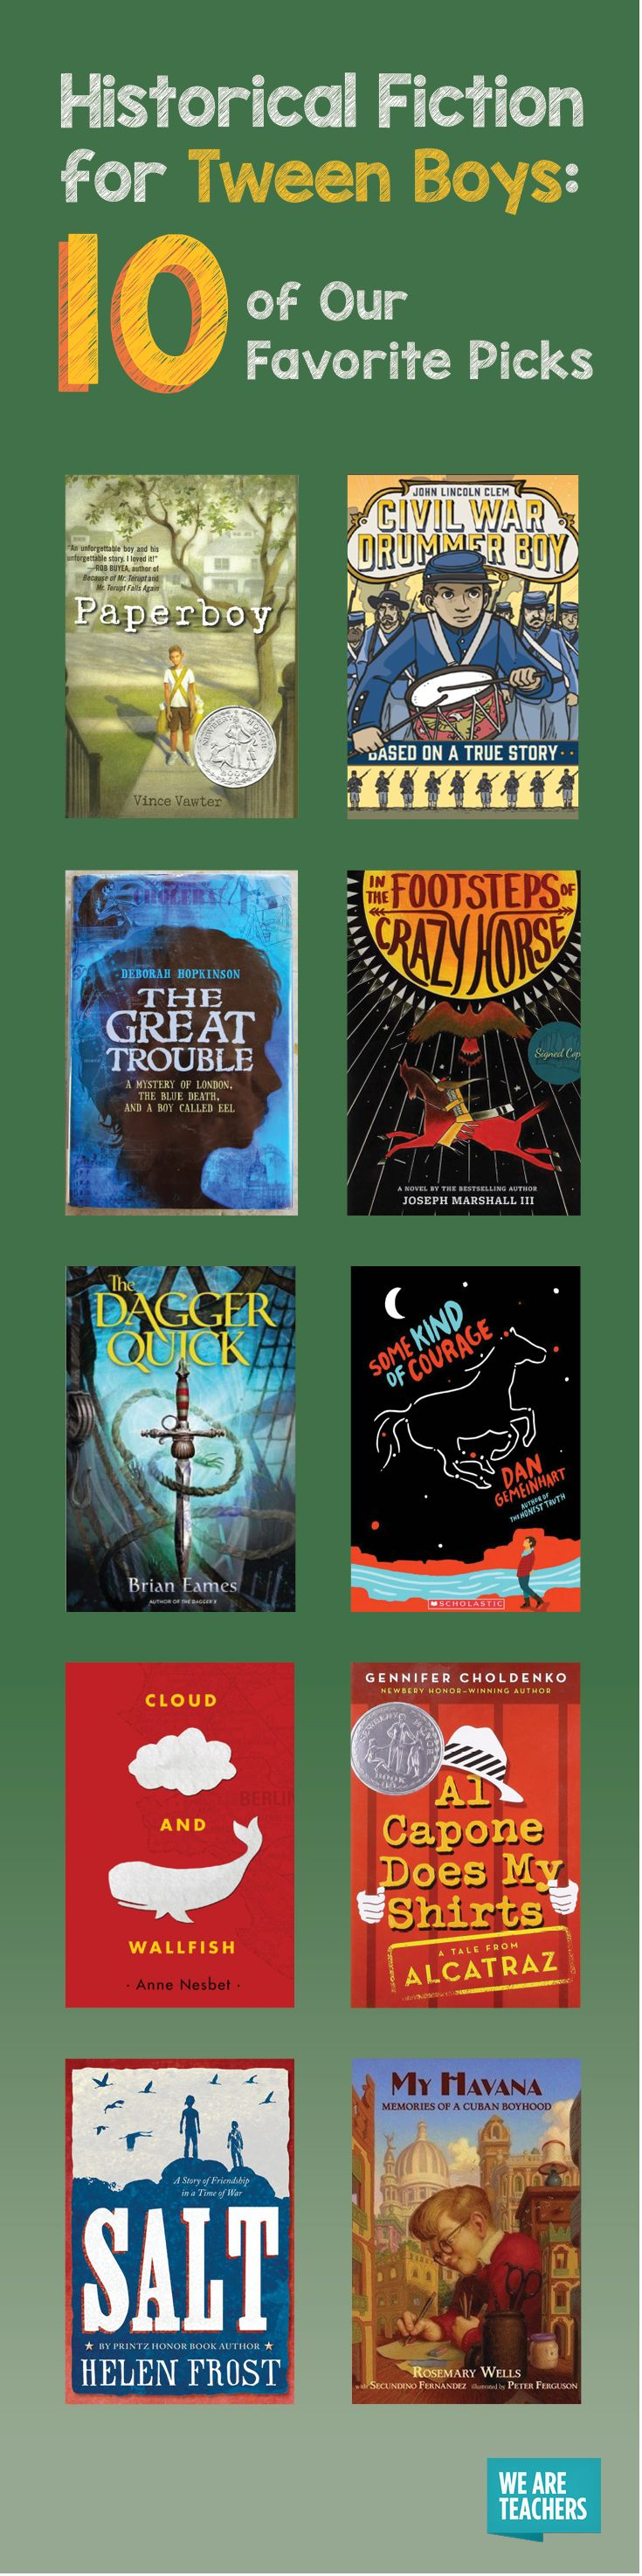 Historical Fiction For Tween Boys: 10 Of Our Favorite Picks